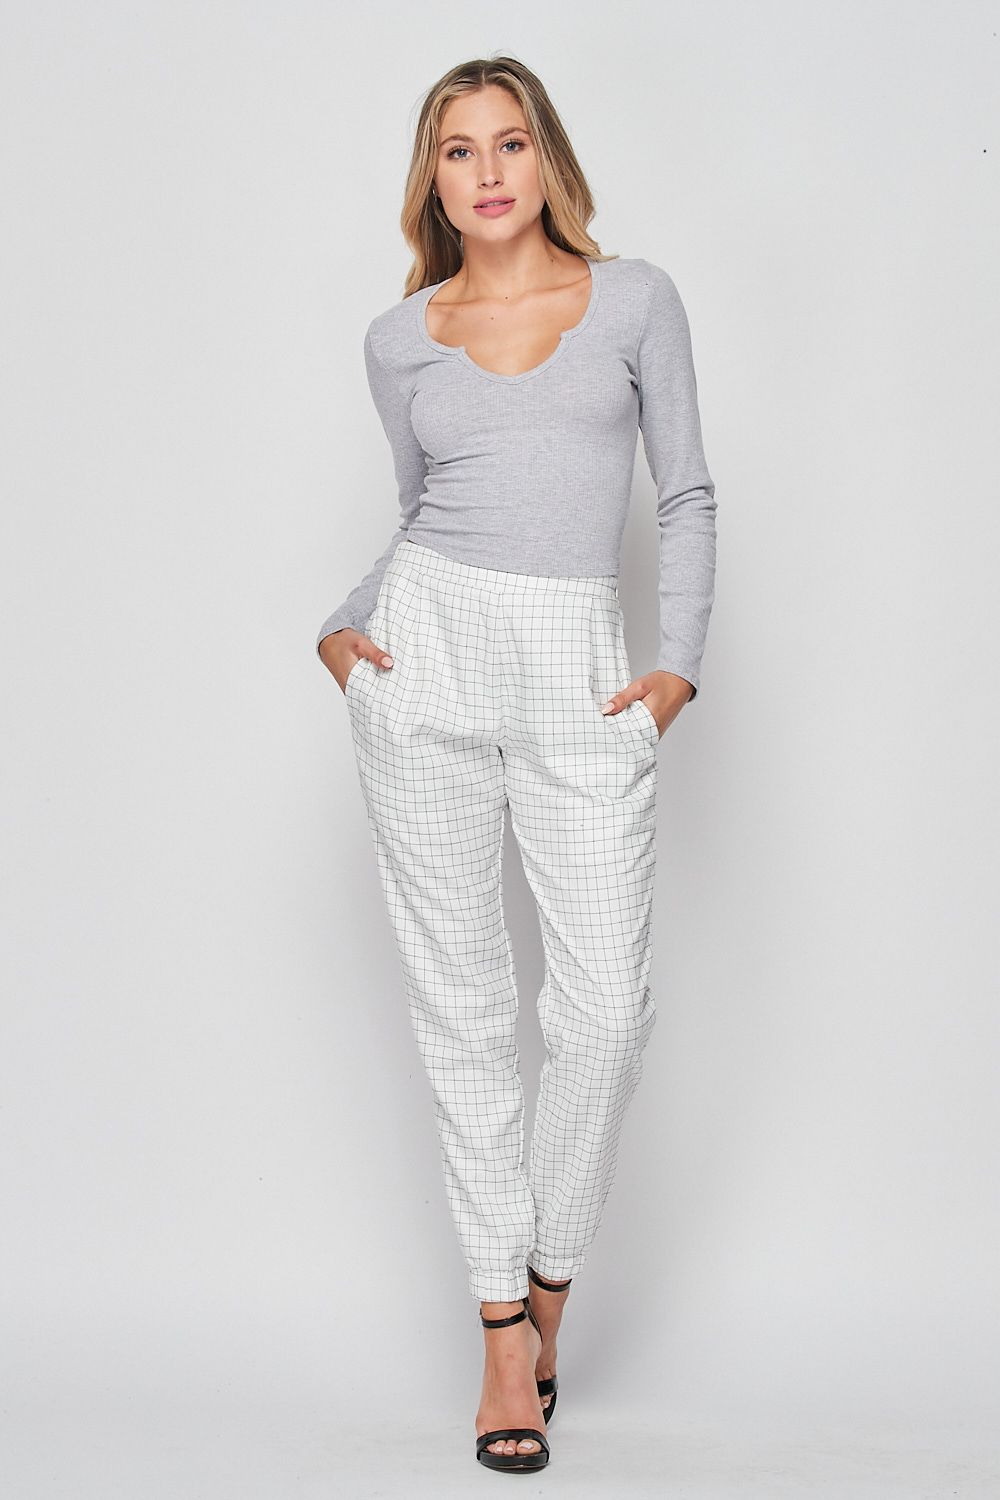 Blank Lewks | High Waisted Office Jogger Pants | White